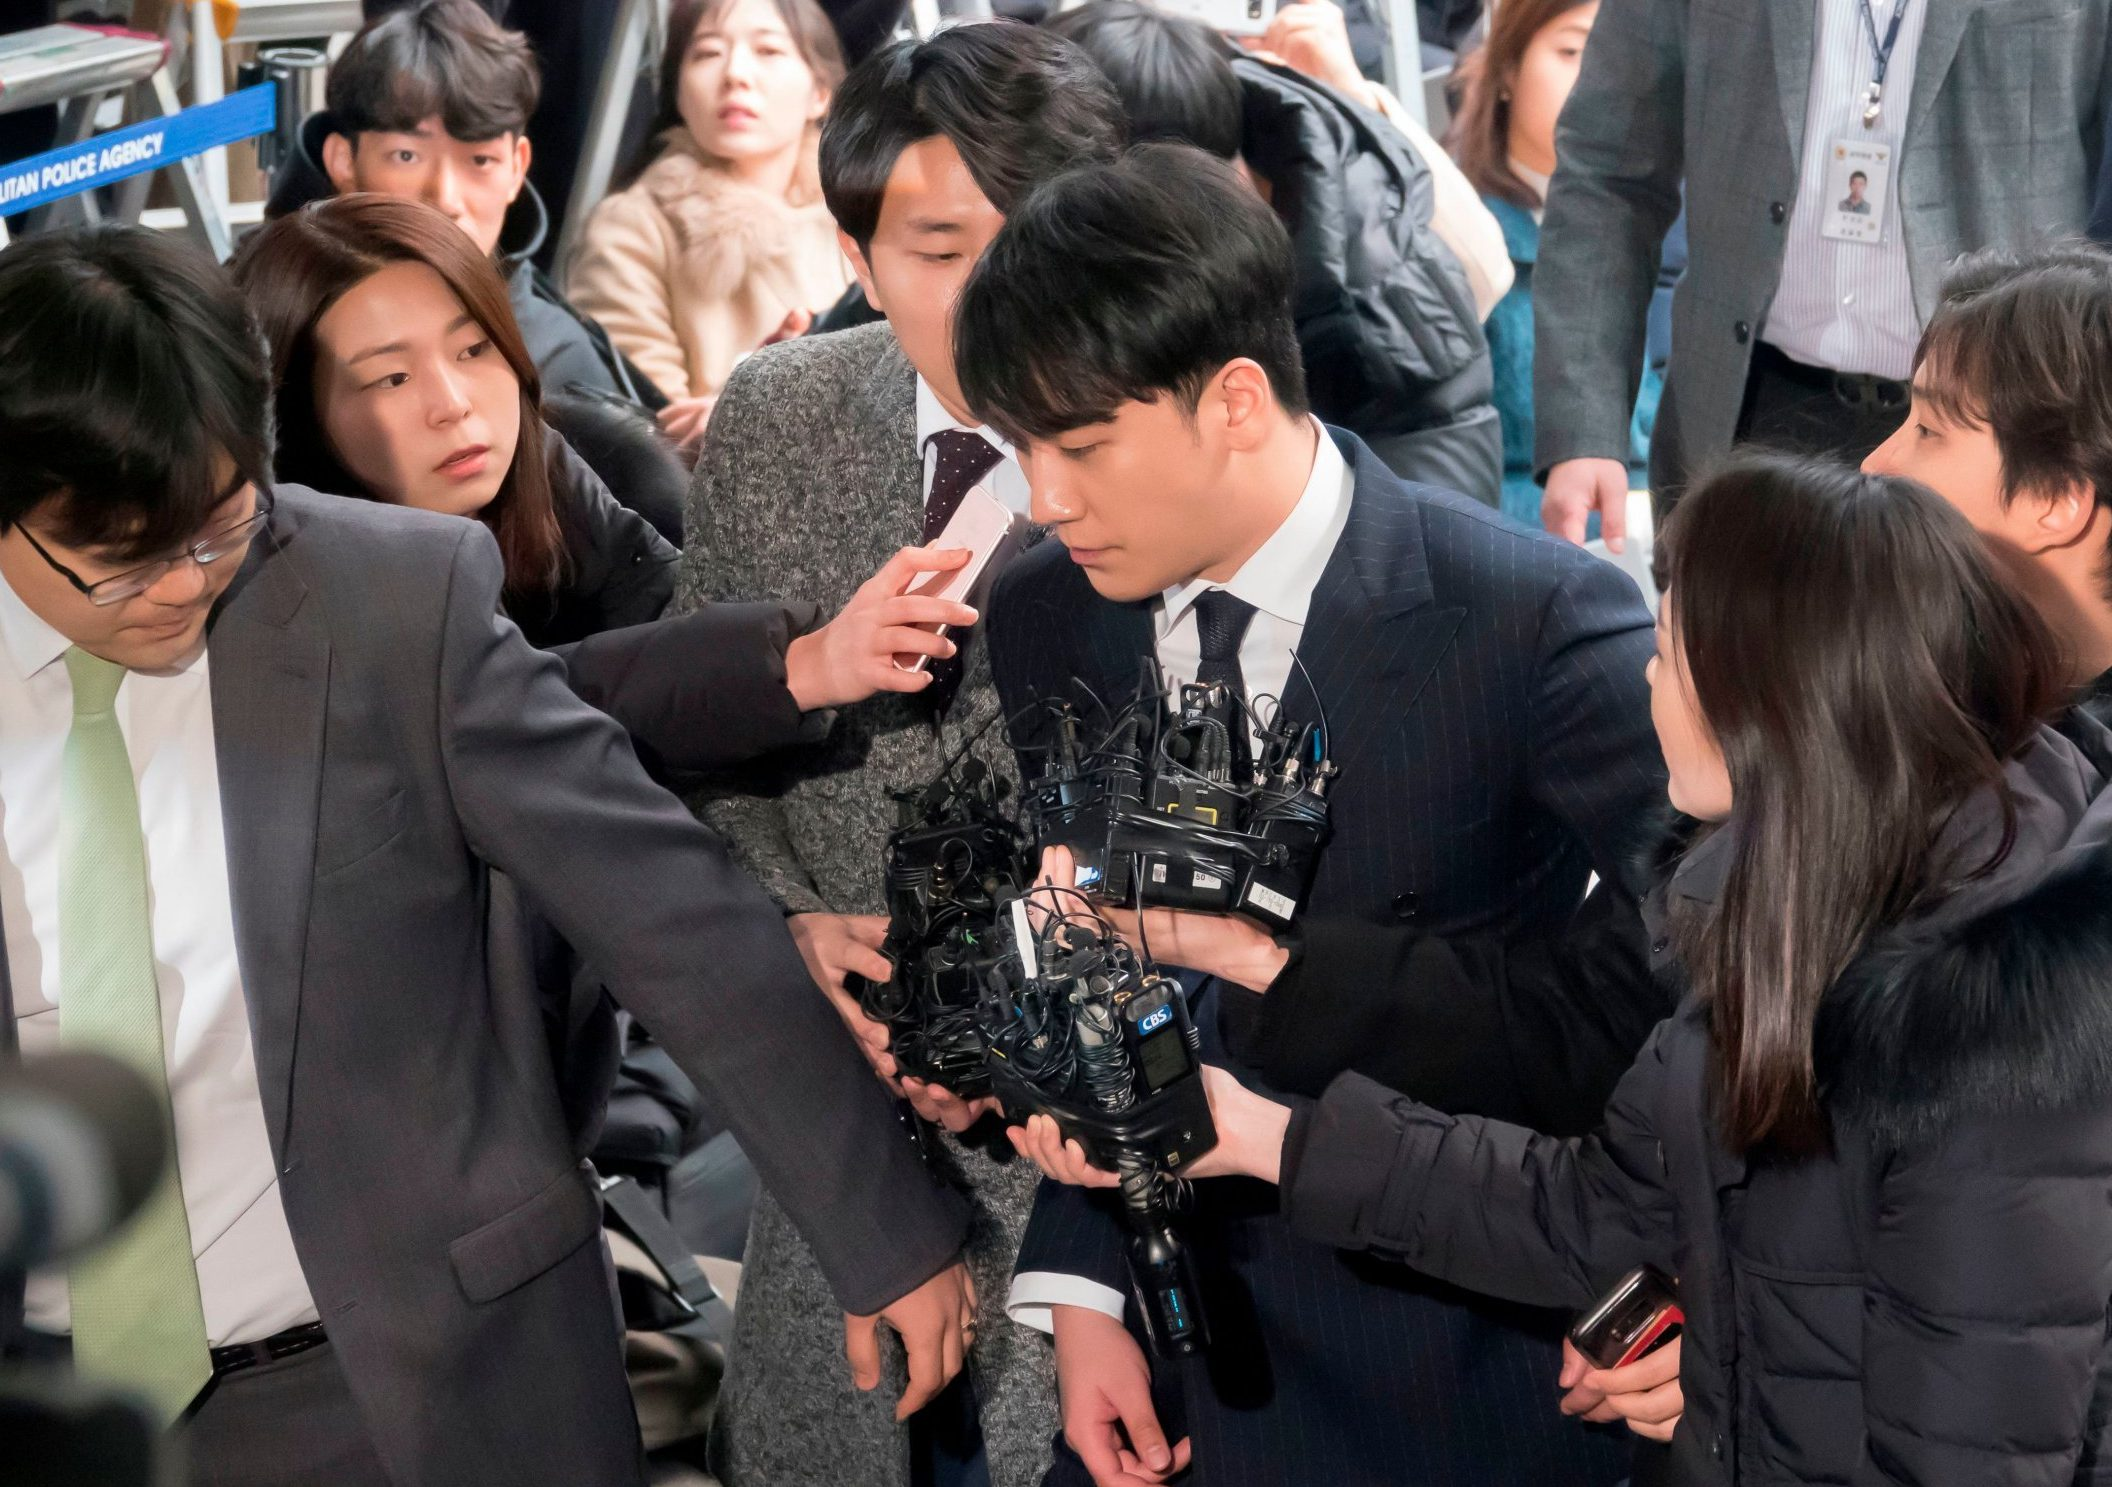 Mandatory Credit: Photo by Aflo/REX (10155579k) Lee Seung-hyun (C), a member of K-pop boy band BIGBANG, arrives at the Seoul Metropolitan Police Agency for police questioning over sex-for-favors allegations Seungri qeustioned over sex-for-favors allegations, Seoul, South Korea - 14 Mar 2019 He is accused of arranging sexual services for potential investors in a nightclub in Seoul.